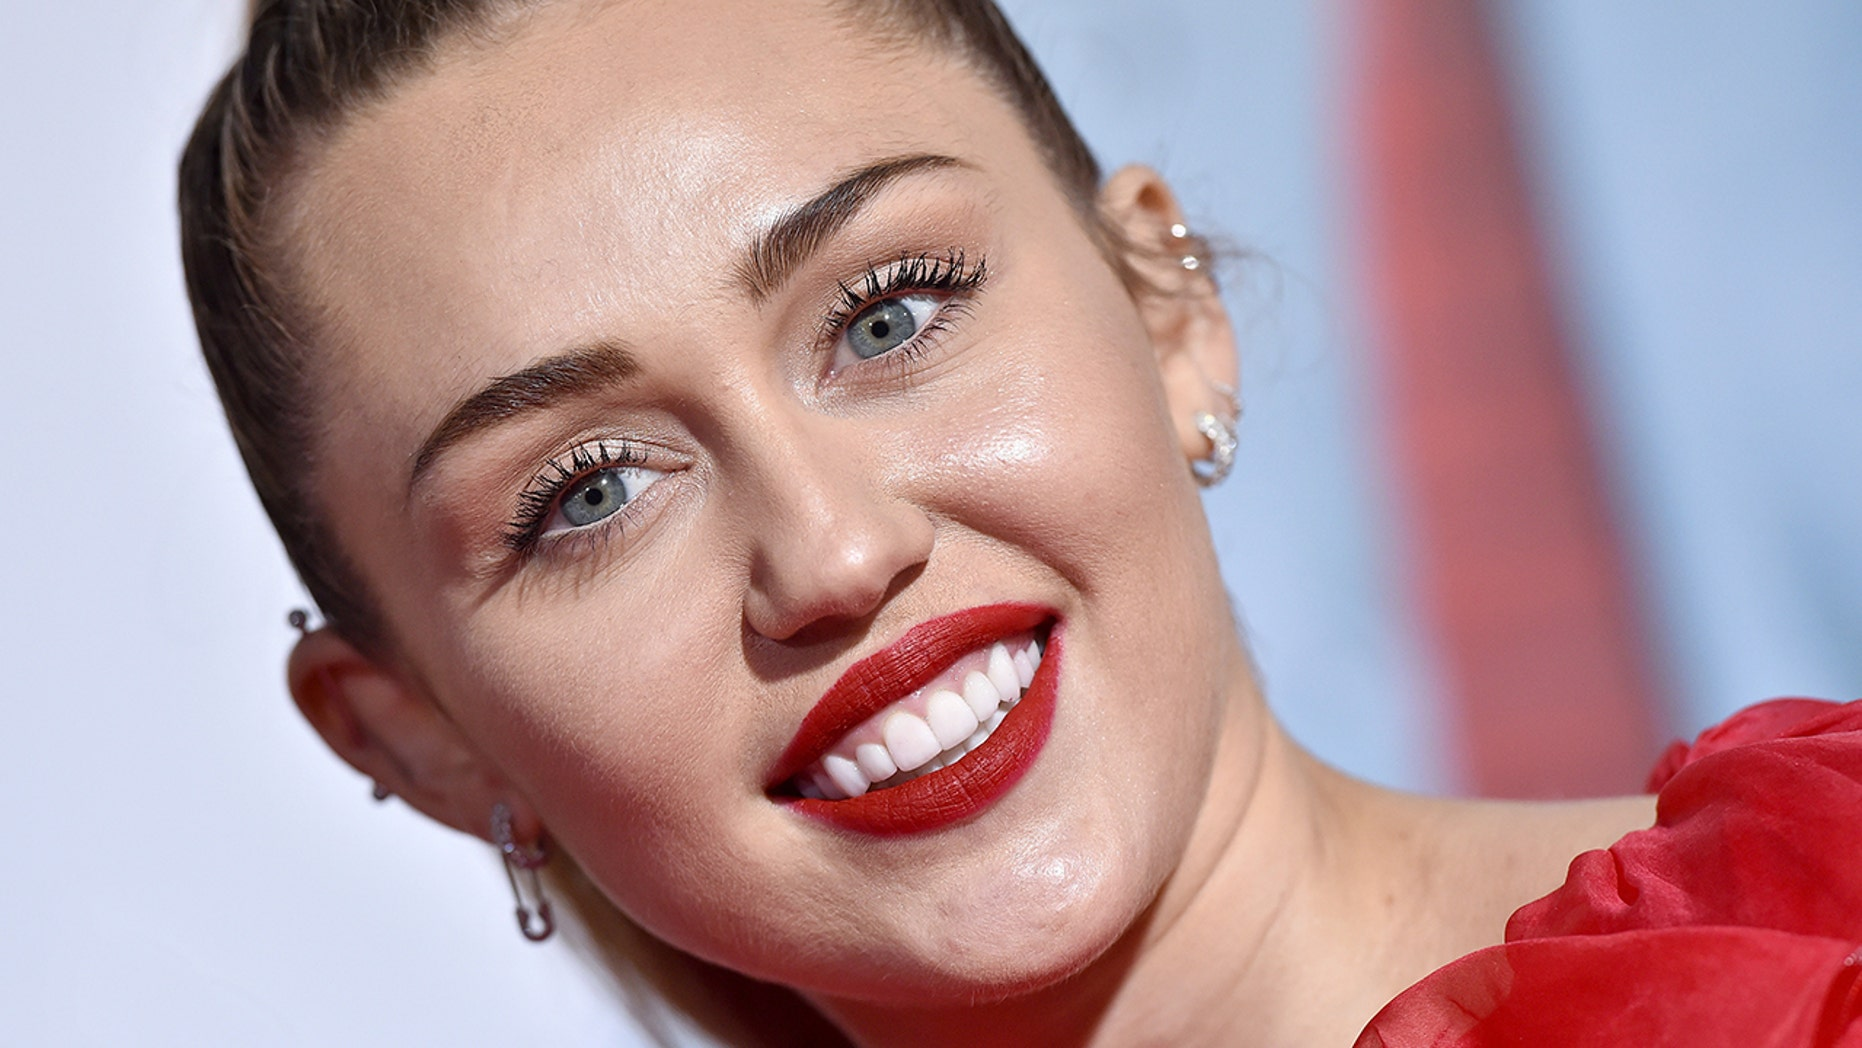 Miley Cyrus' NSFW Valentine's Day Tweet To Liam Hemsworth Is So Extra